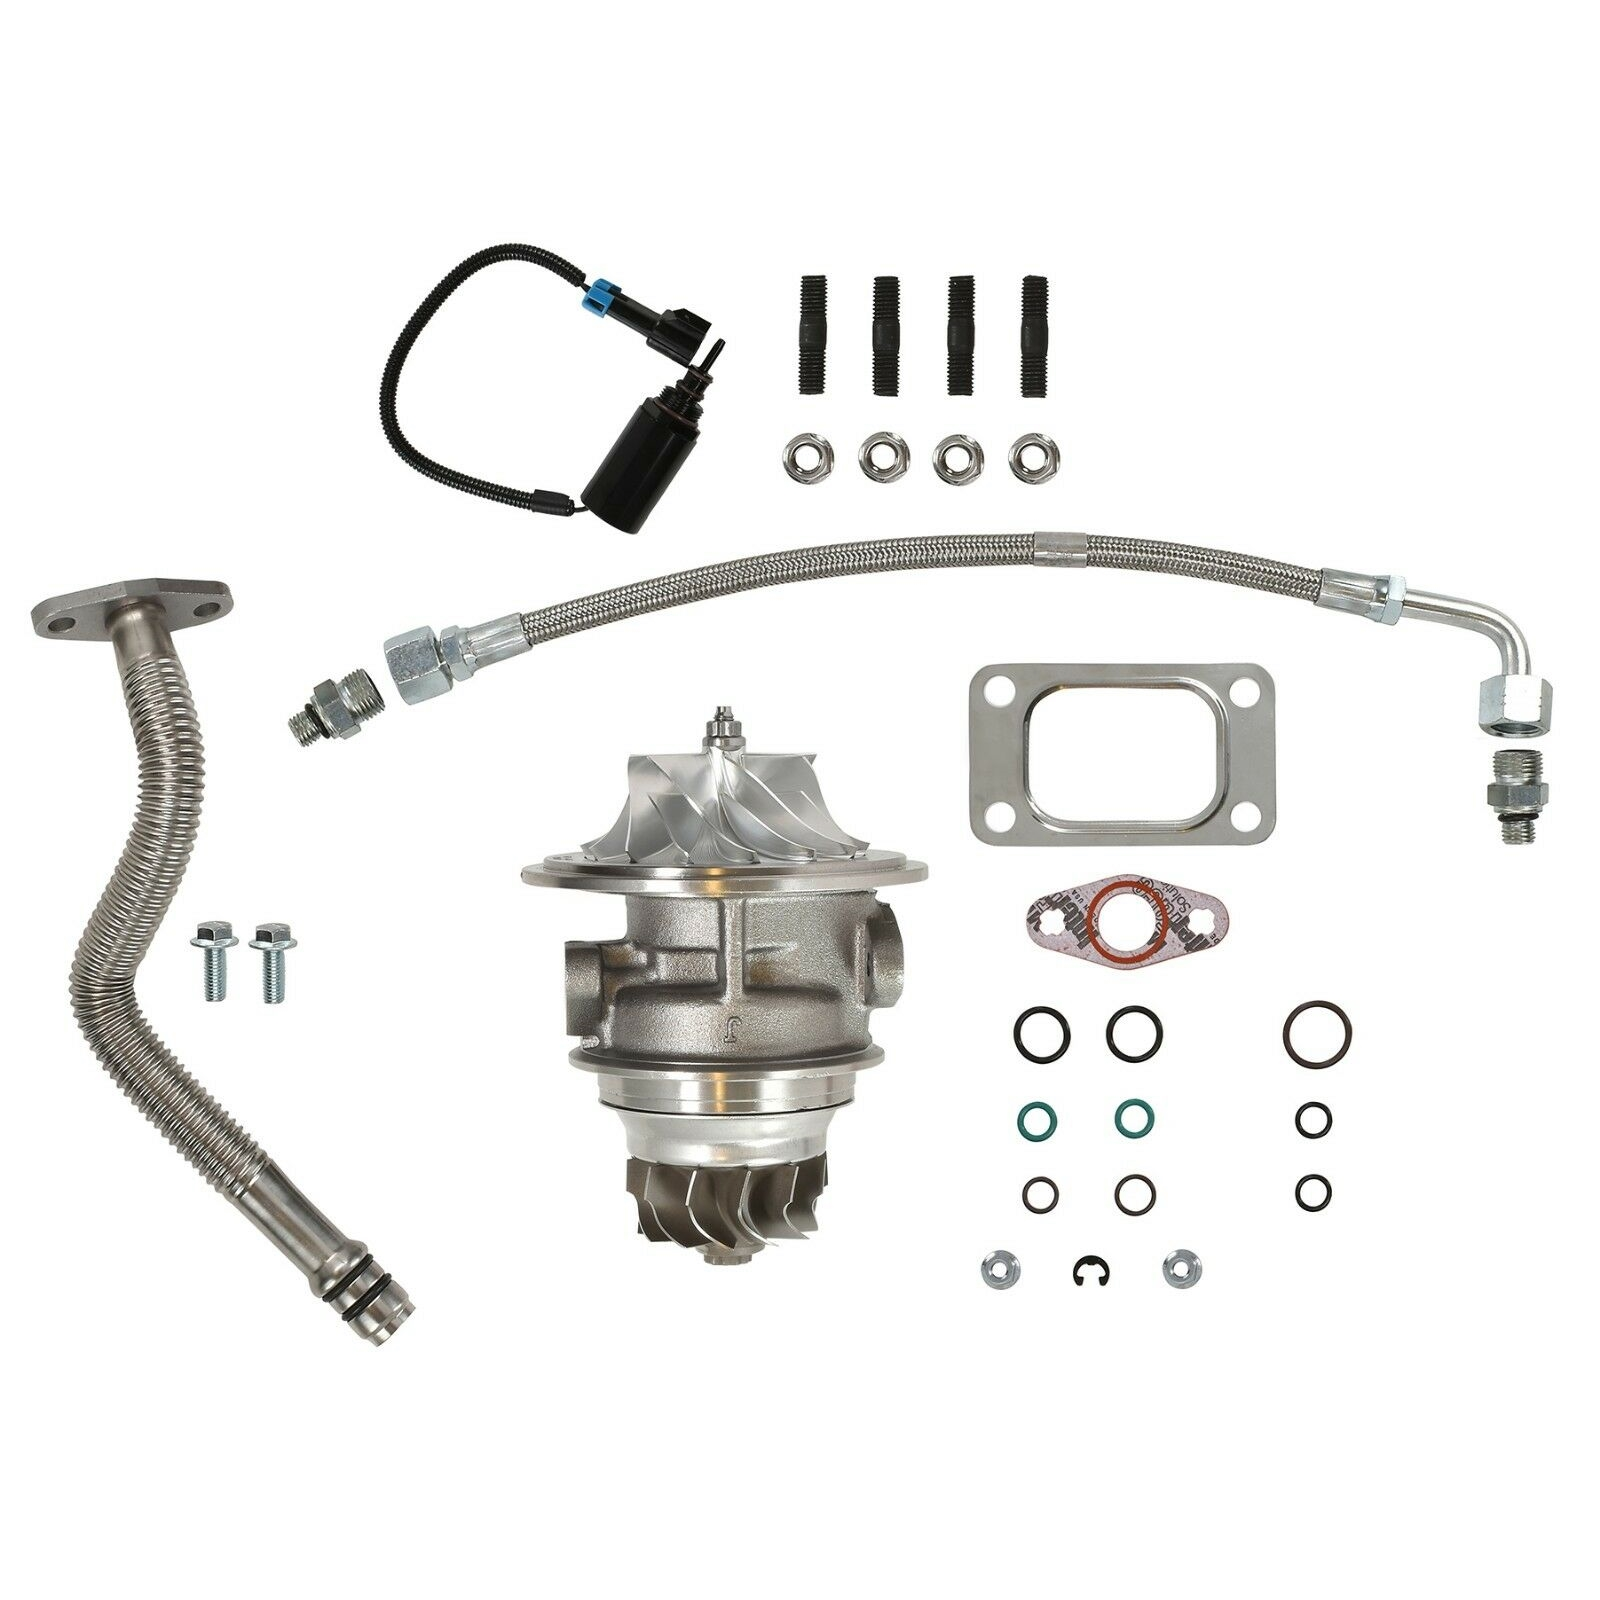 HE351CW Turbo Rebuild Kit Billet CHRA Oil Lines Wastegate Solenoid For 04.5-07 5.9L ISB Dodge Ram Cummins Diesel